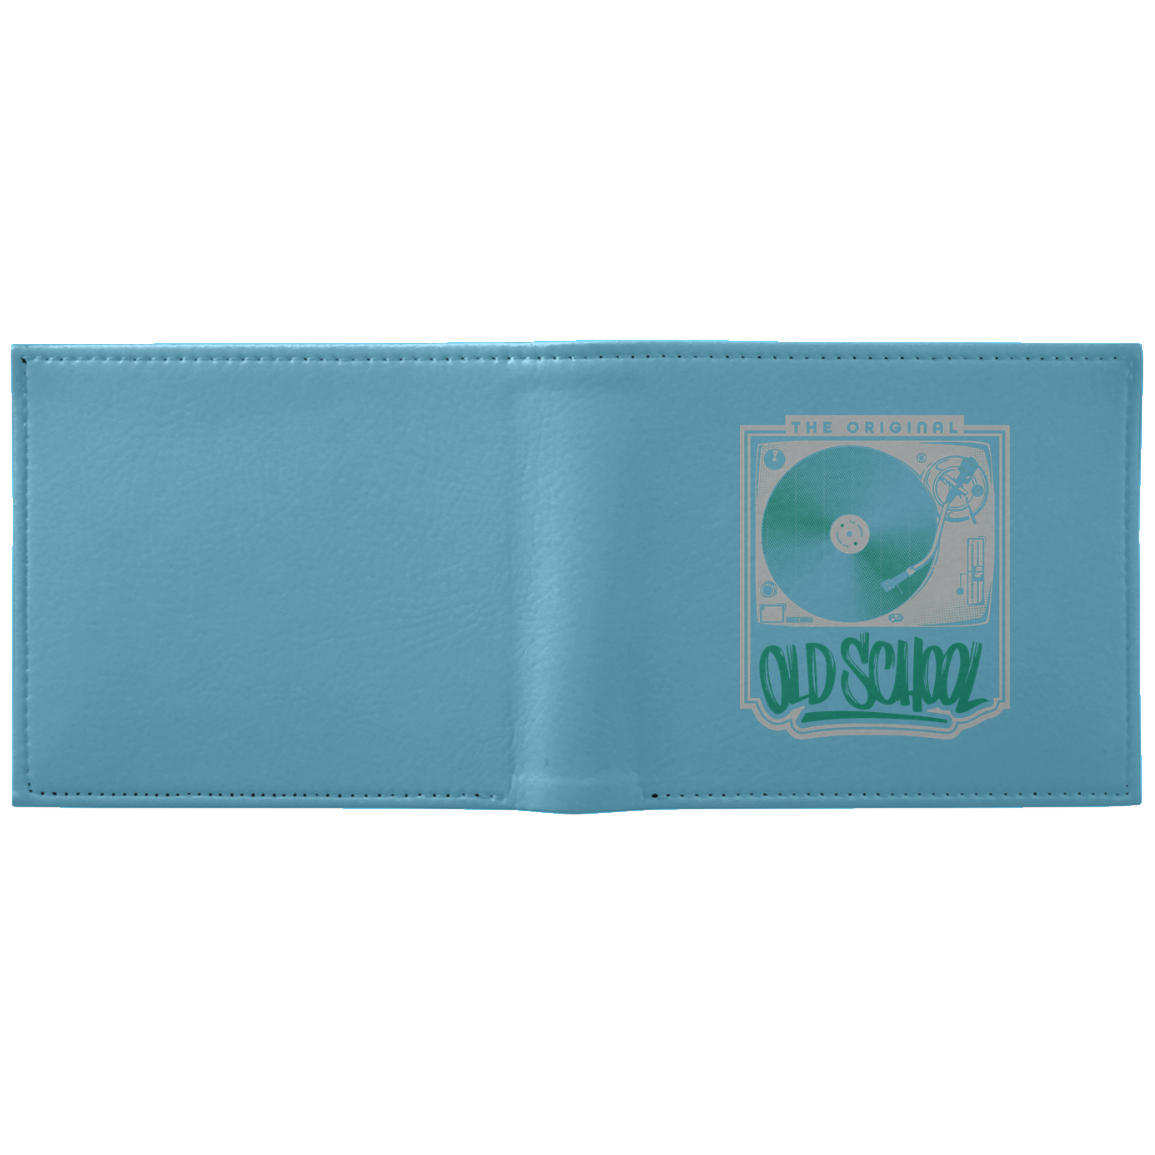 The Original Old School Wallet